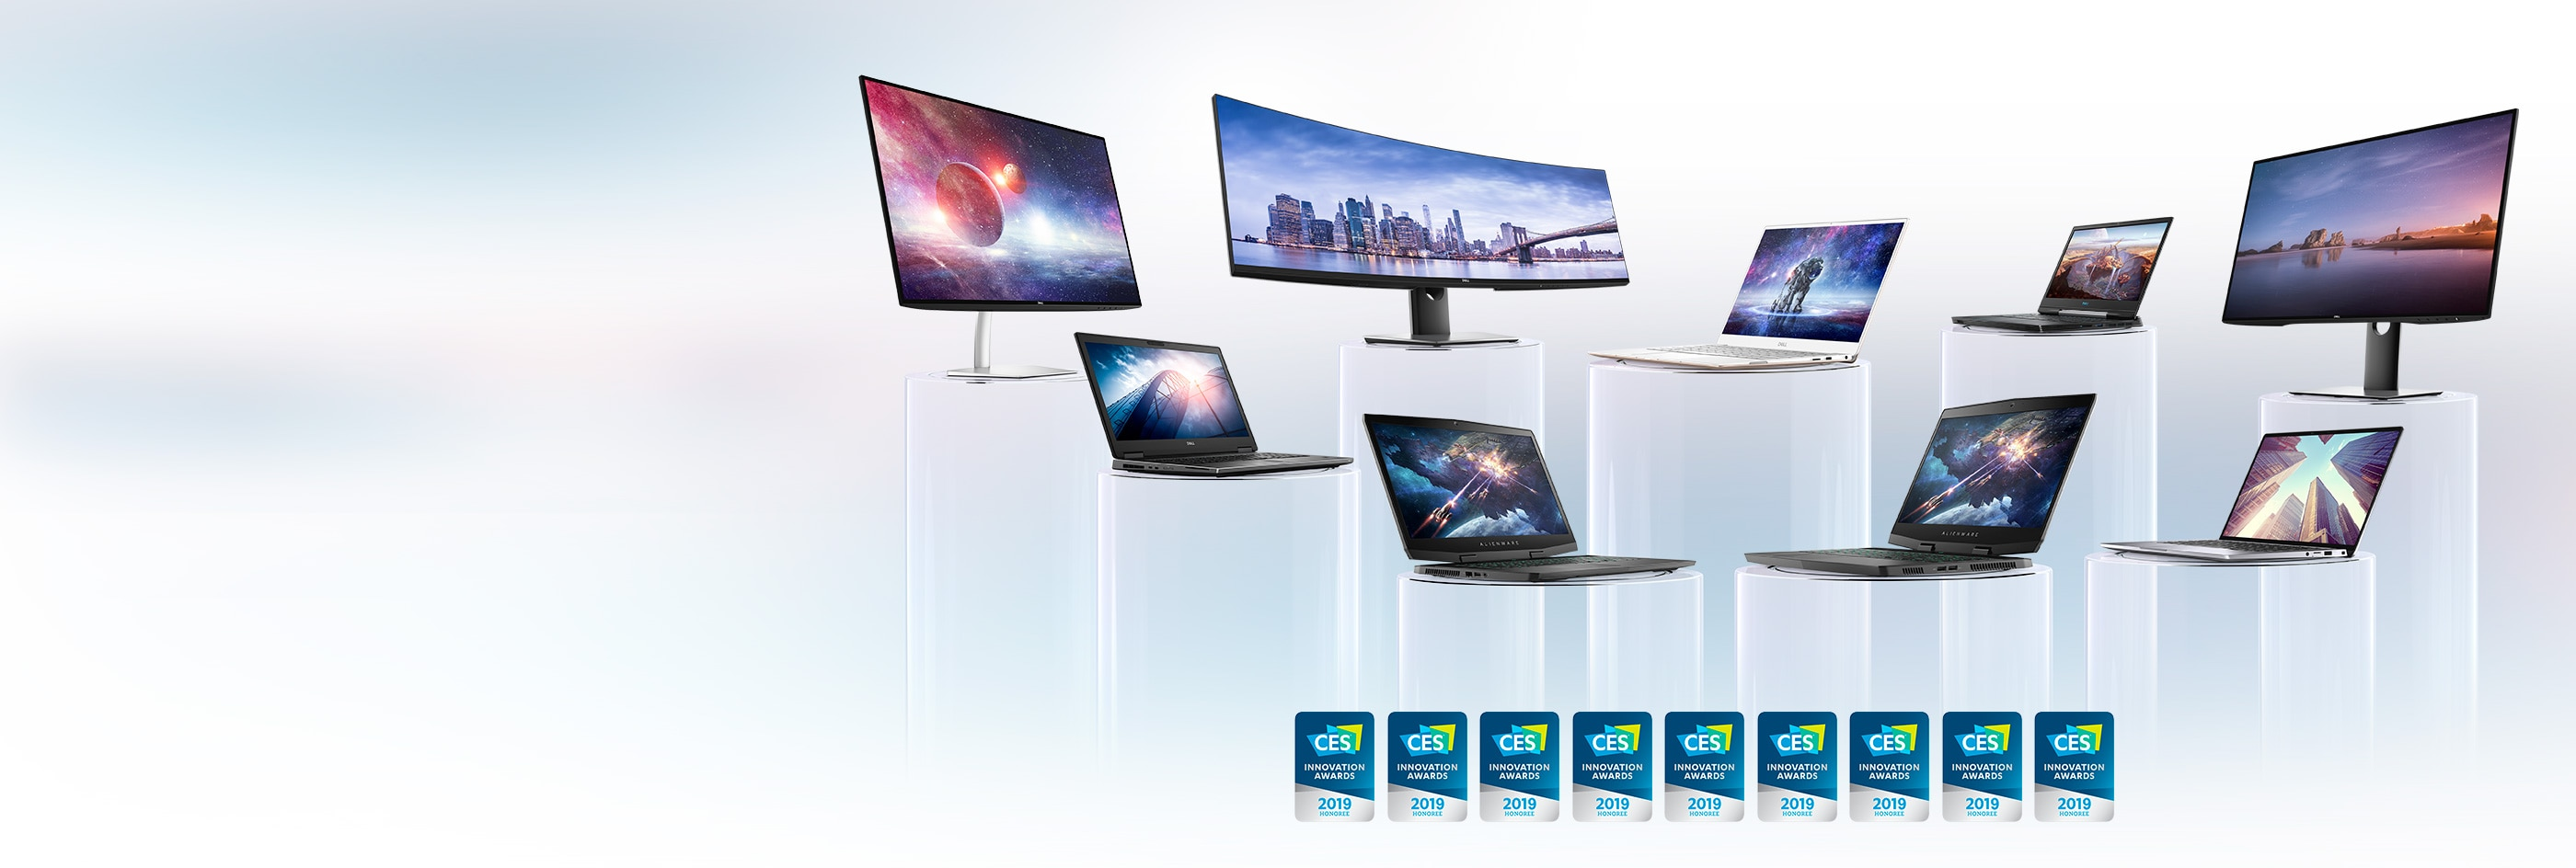 Up to 30% off selected monitors.